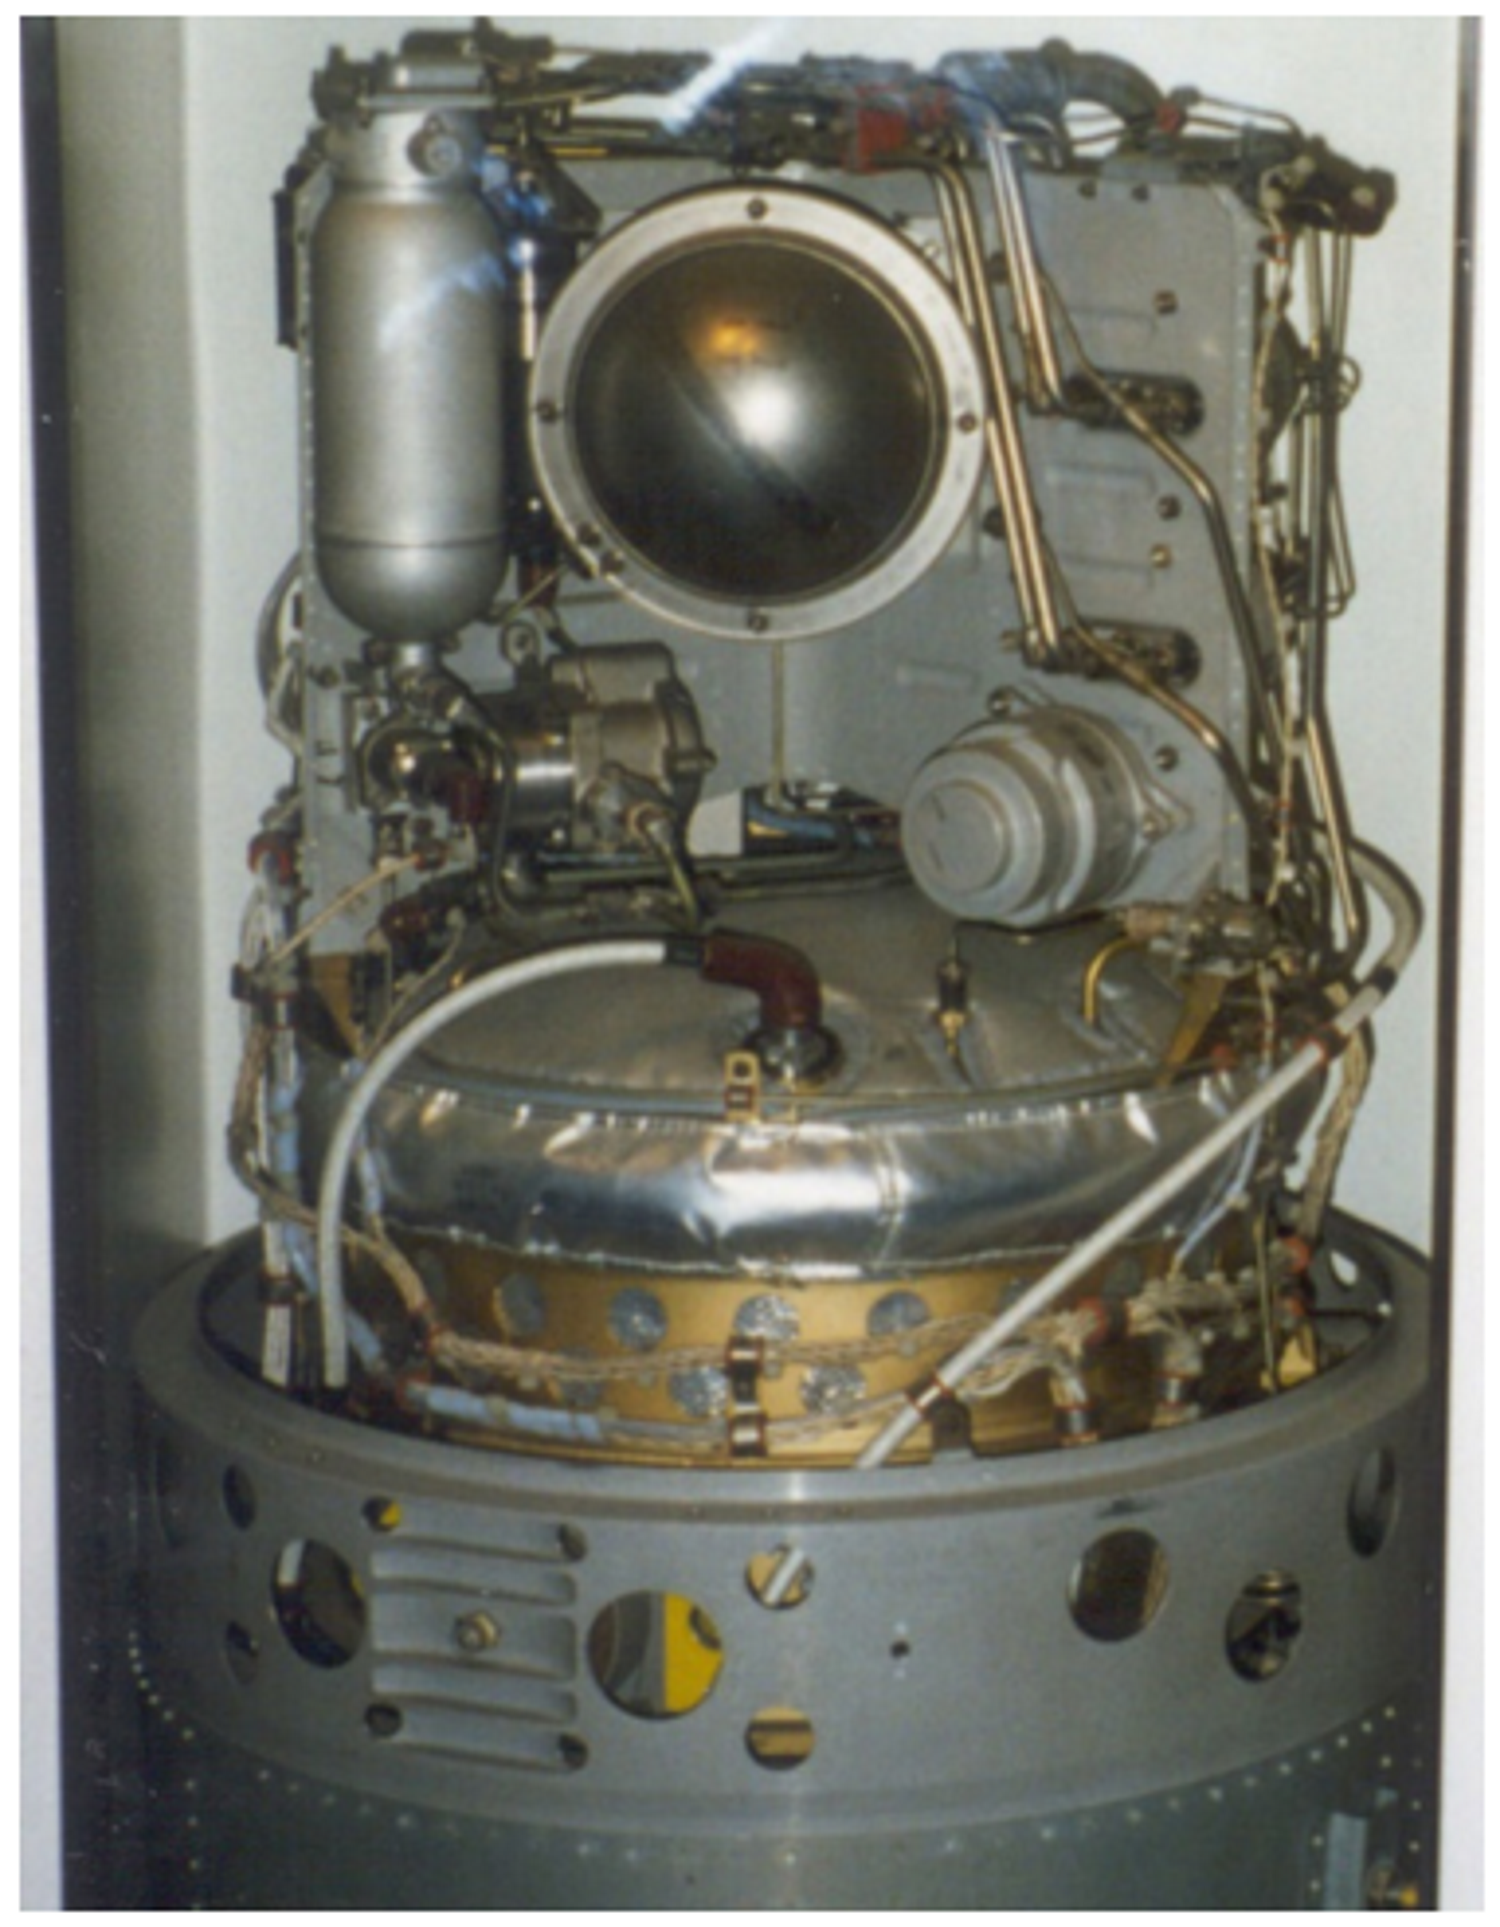 Left: Part of an unflown Apollo fuel cell [National Air and Space Museum]